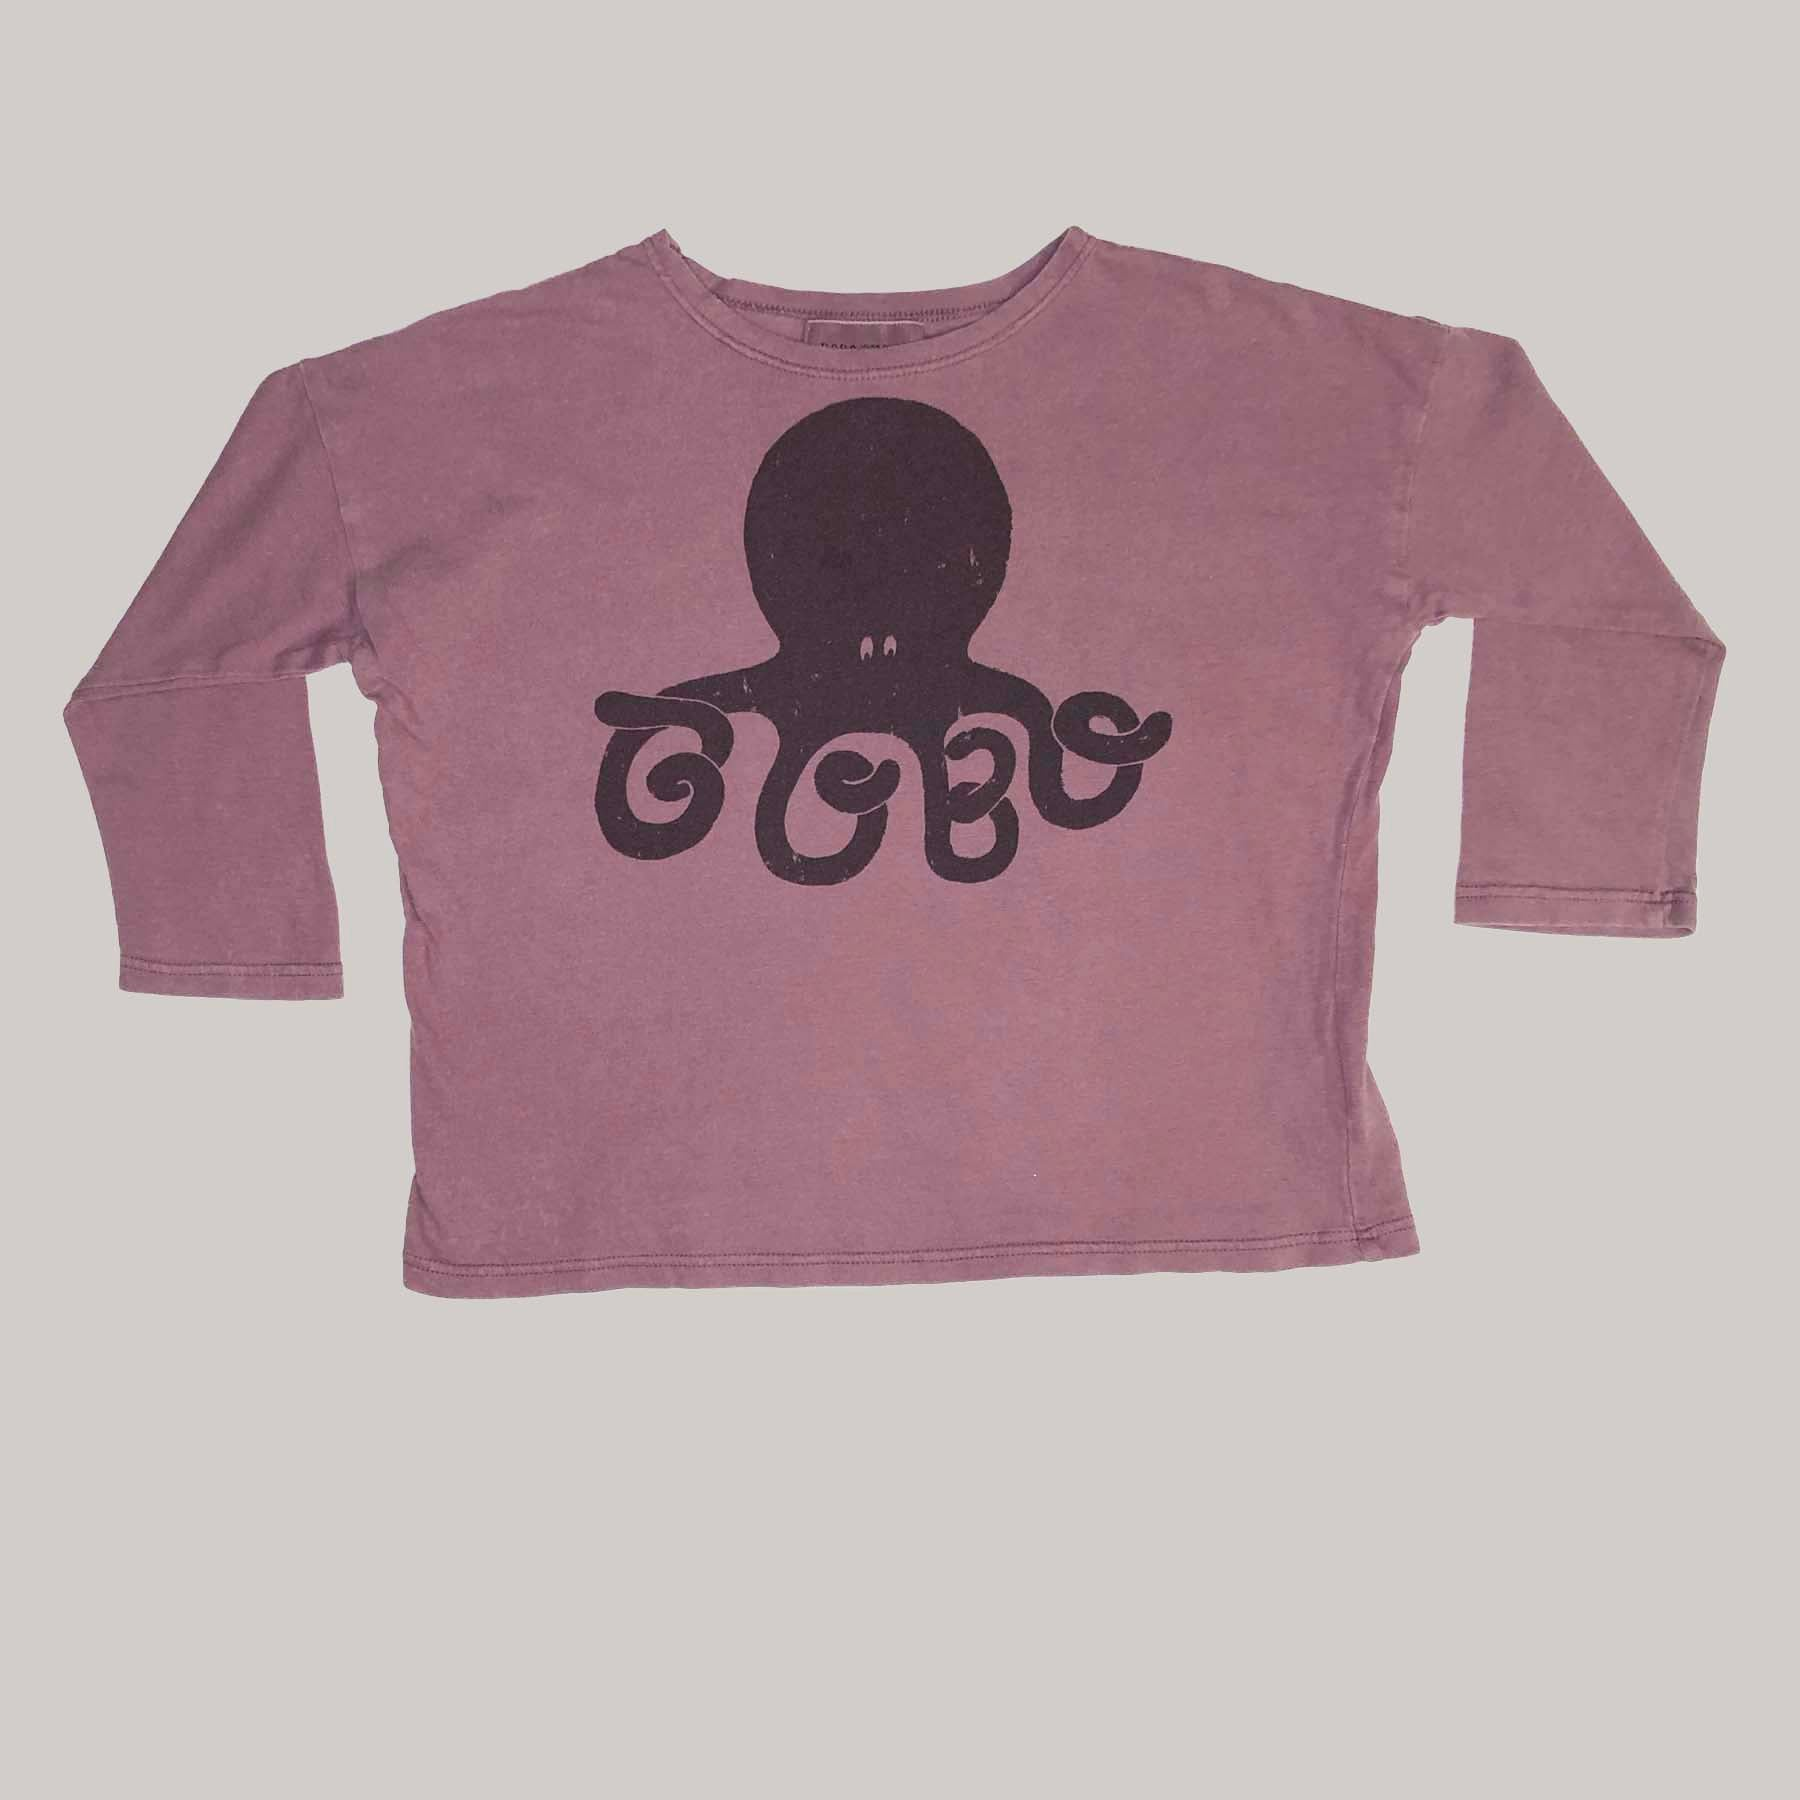 Re-wear : Bobo Choses octopus paita, purple  | 98cm